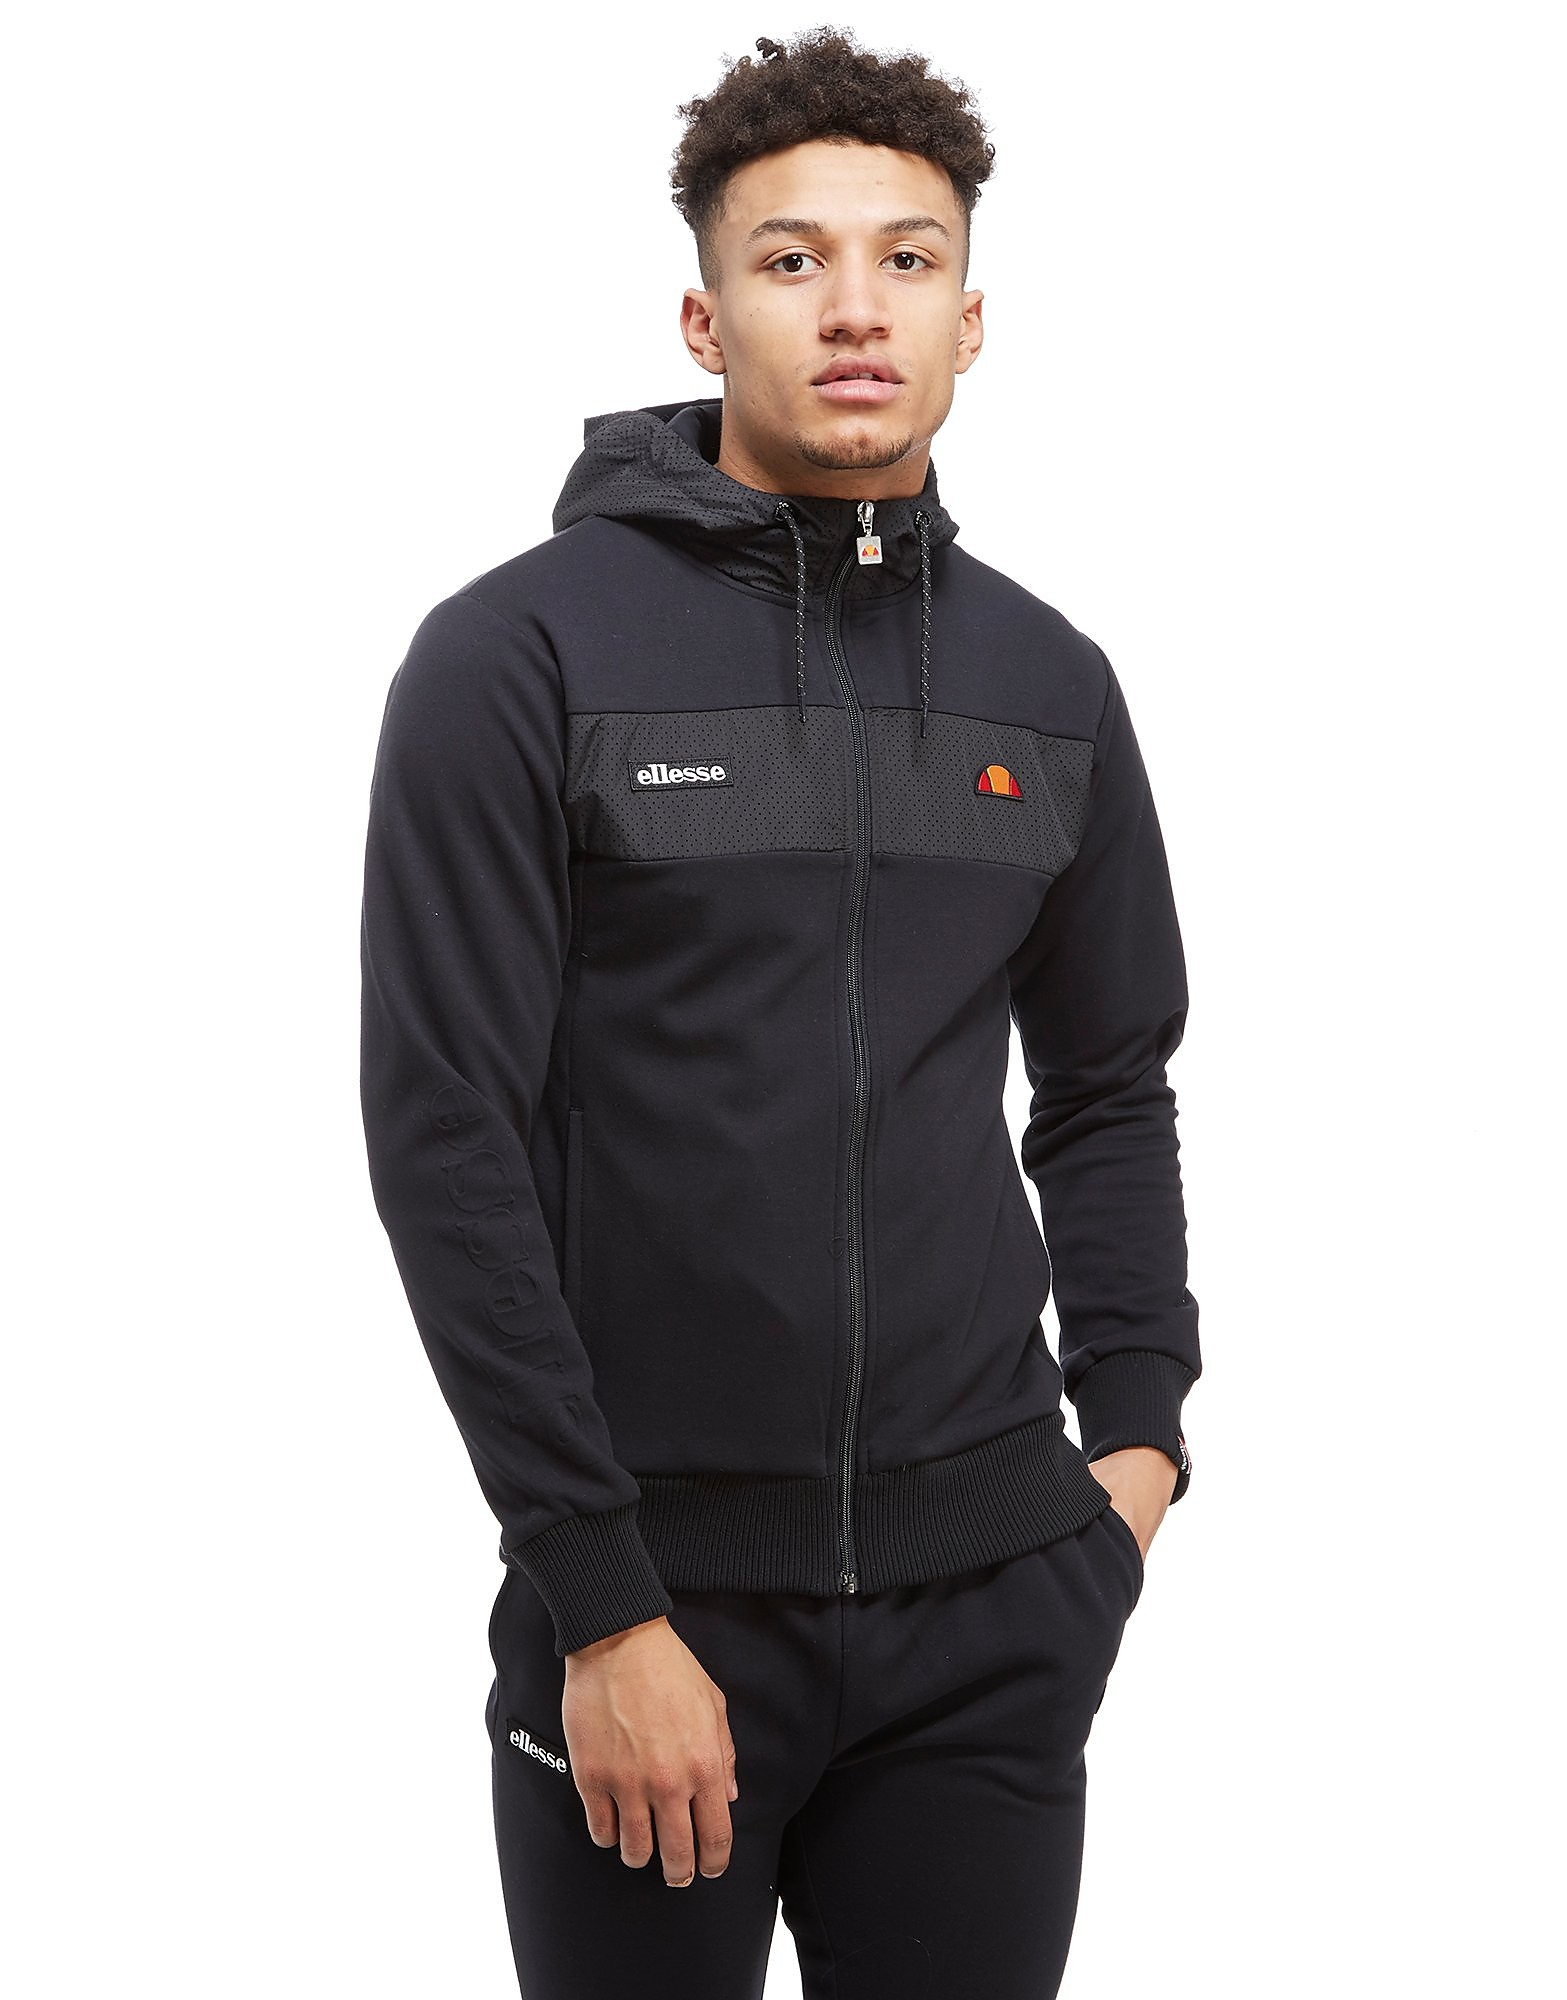 Ellesse Selona Perforated Hoody